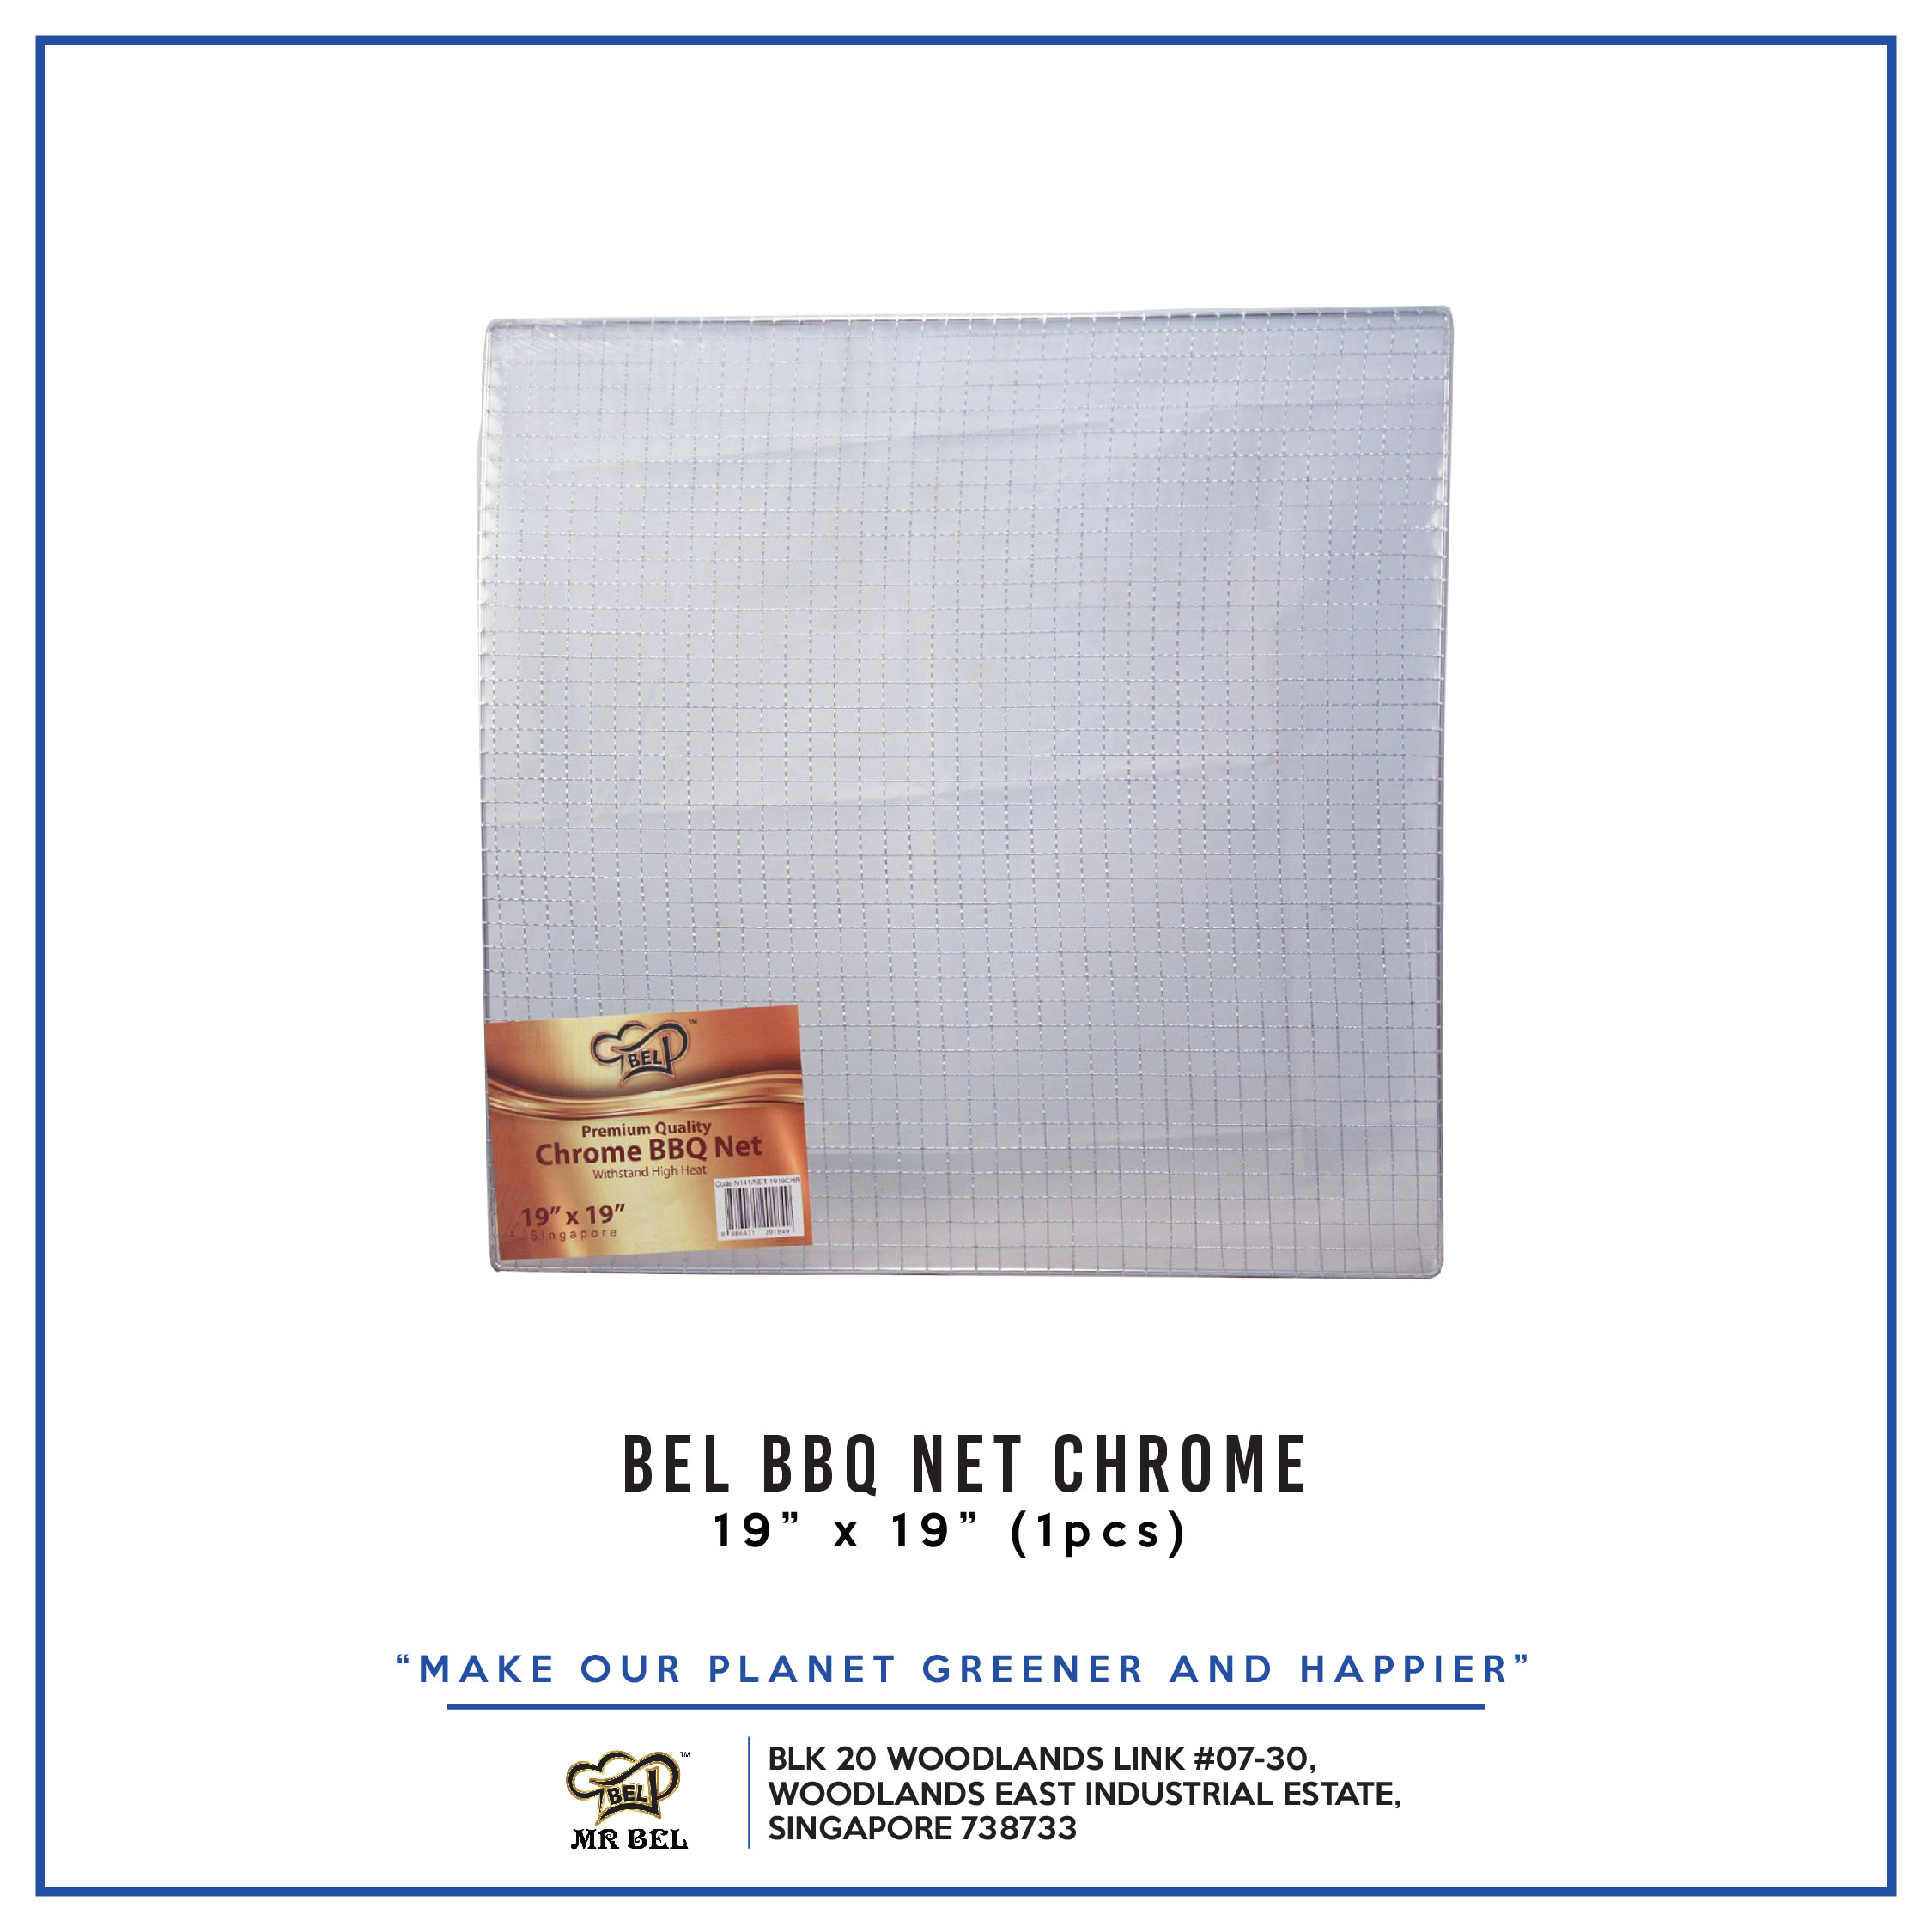 Bel BBQ NET 19  X 19  CHROME per pack - 1 Carton (20packs)